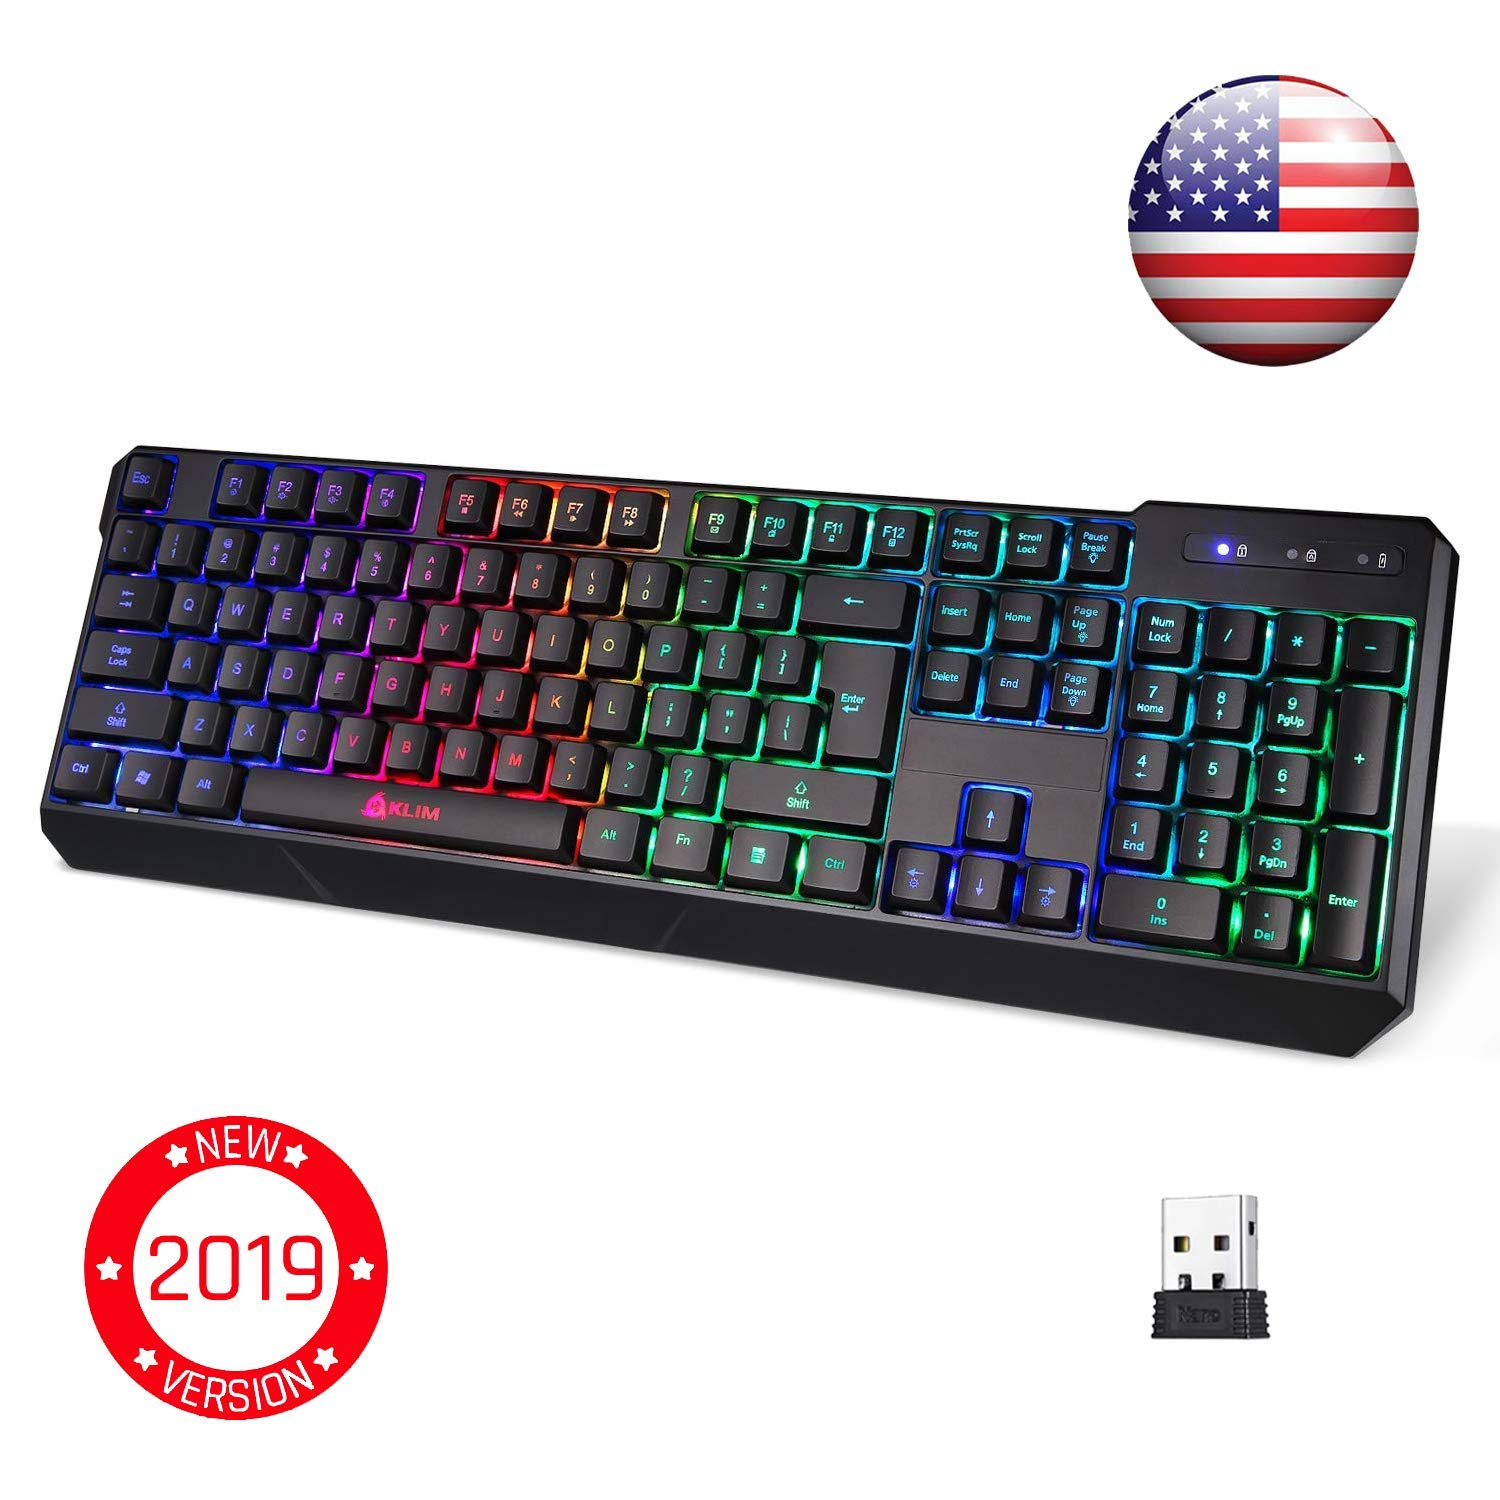 ⭐️KLIM Chroma Wireless Gaming Keyboard - USB with Led Rainbow Lighting - Backlit, Ergonomic, Quiet, Water Resistant - Black RGB PC Windows PS4 Mac Keyboards - Teclado Gamer Silent Lighted Up Keys by KLIM